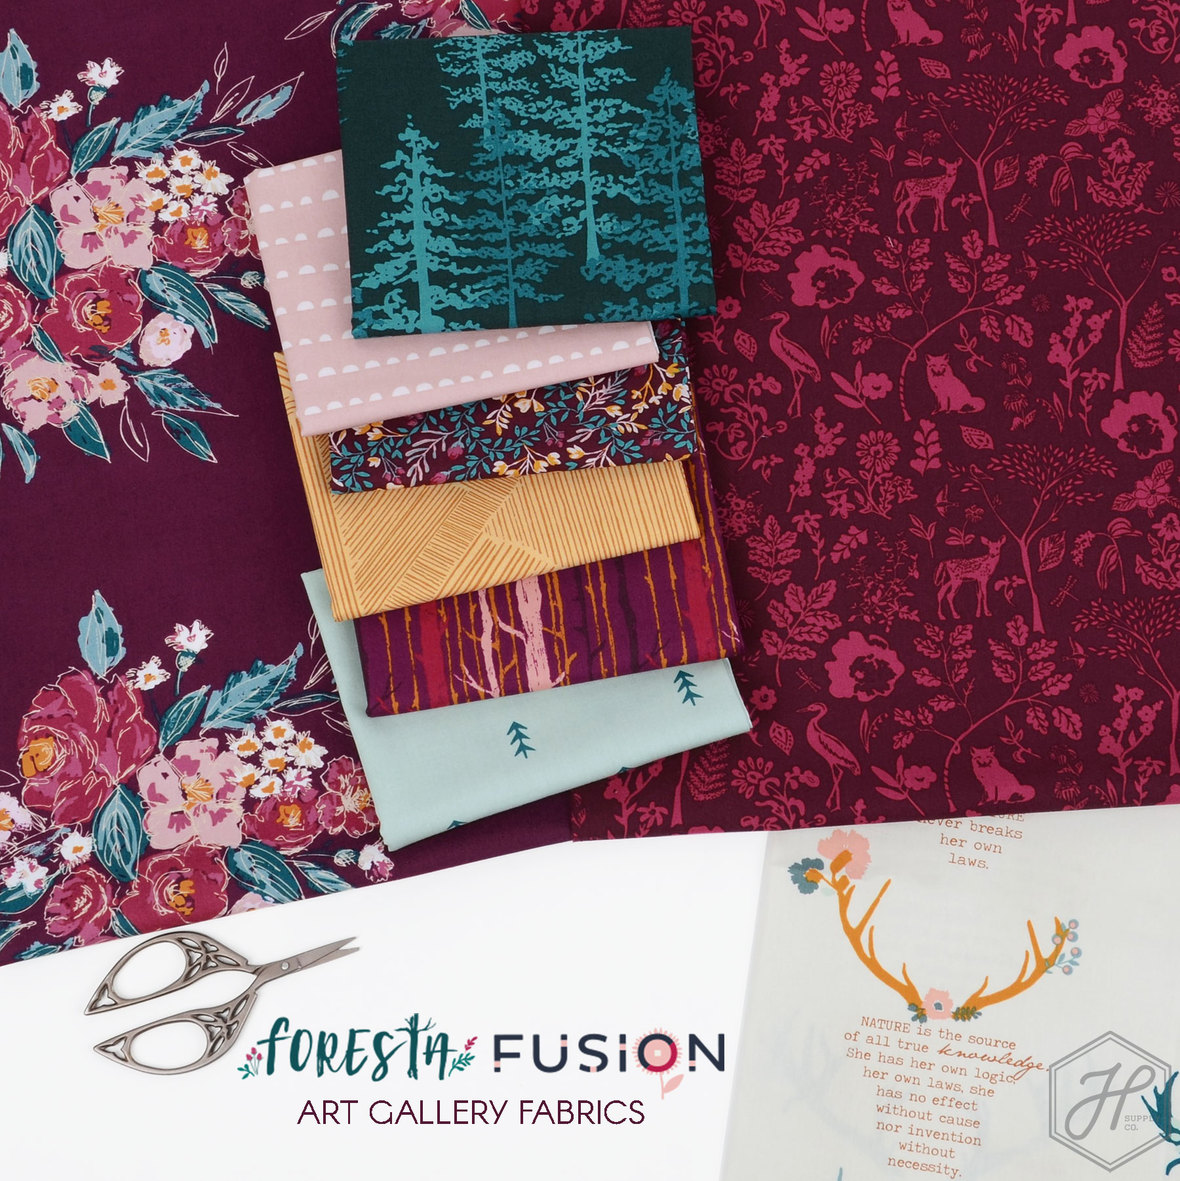 Foresta-Fusion-Fabric-Art-Gallery-at-Hawthorne-Supply-Co.